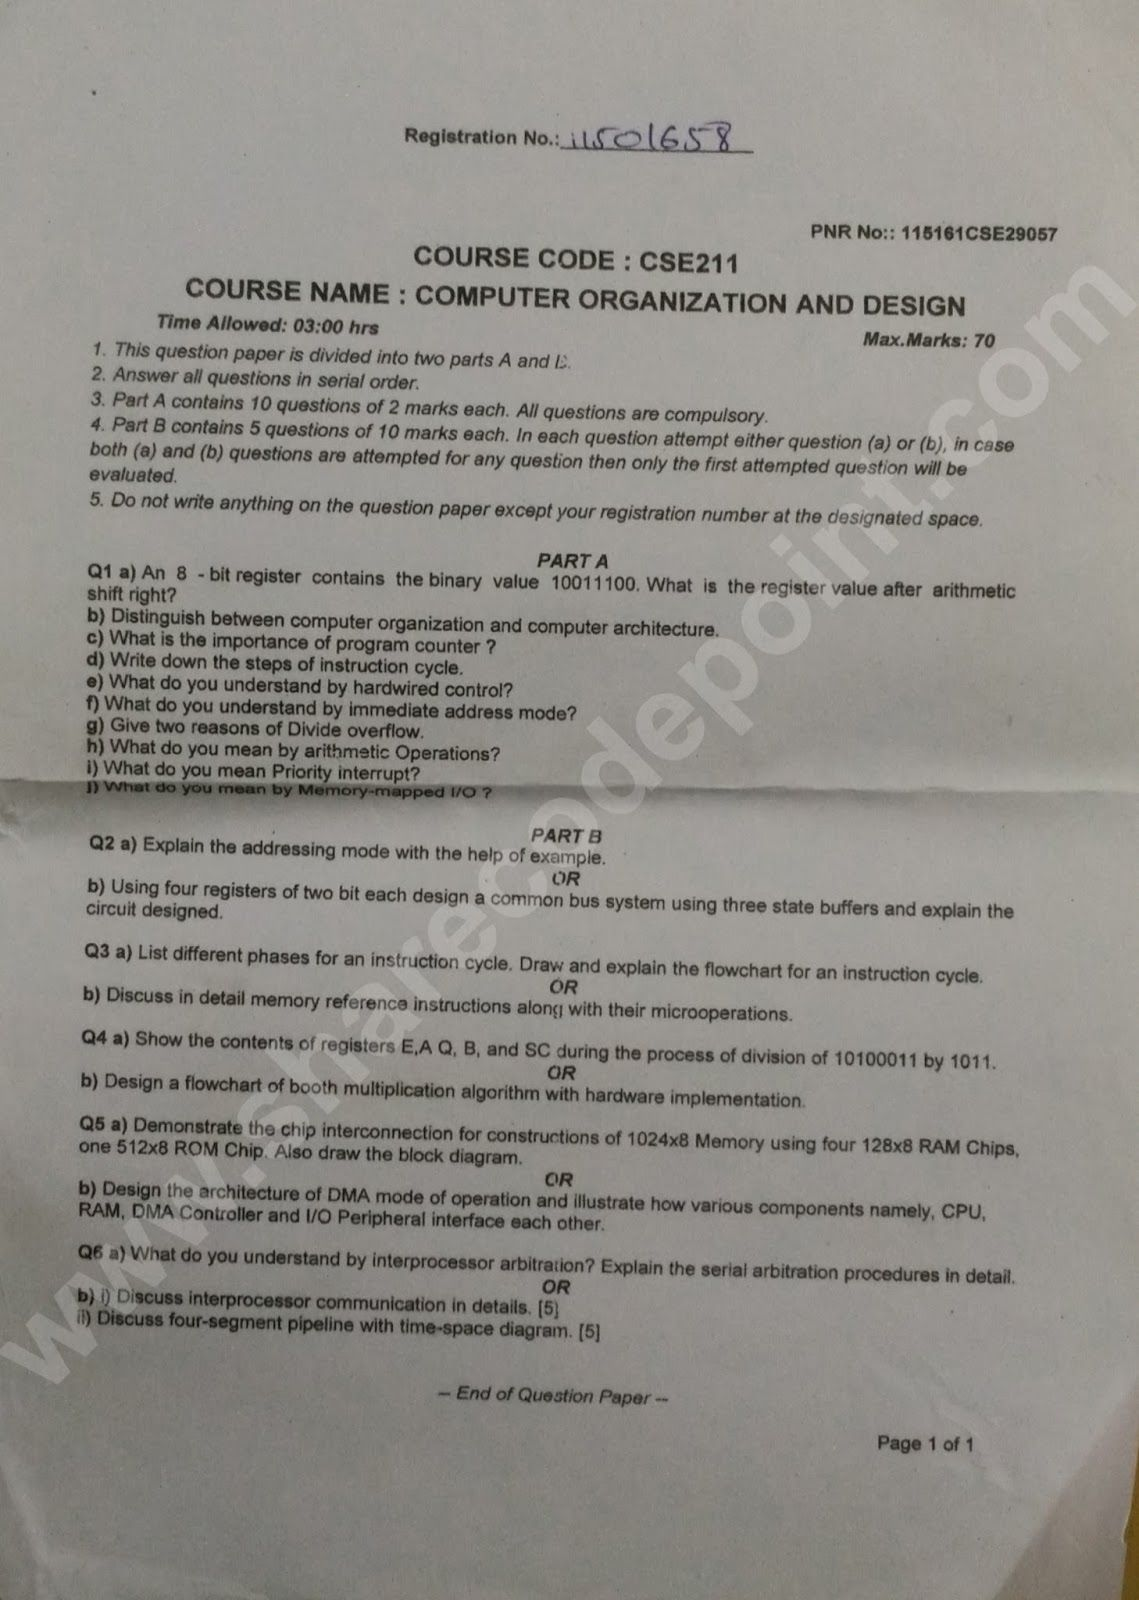 Cse211 Computer Organization And Design End Term Exam Question Paper Cse 211 Lpu Question Paper This Or That Questions How To Can Tomatoes